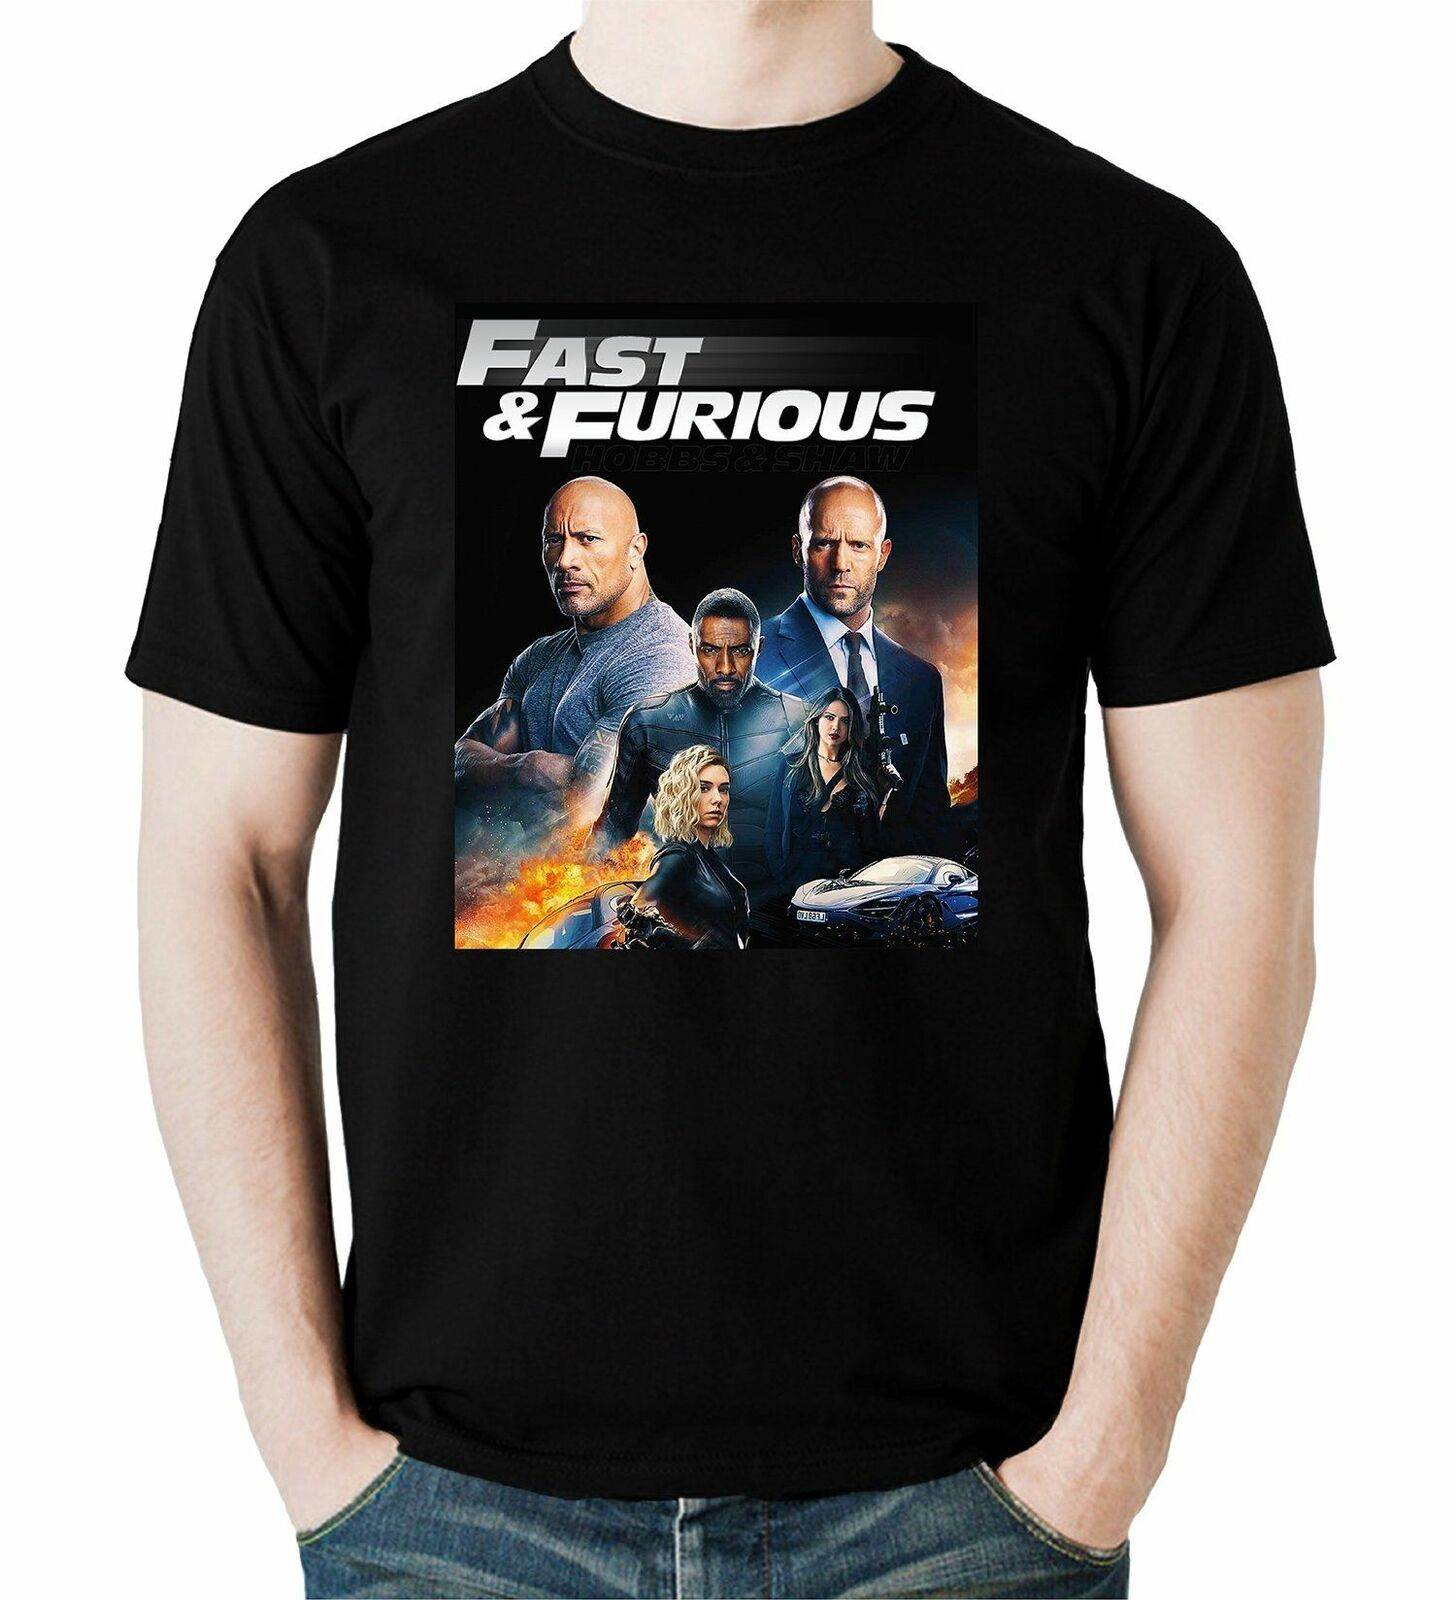 Fast & Furious Hobbs & Shaw T-Shirt Racing Sport Action Movie Men Black T-Shirt Short Sleeve Summer Style image